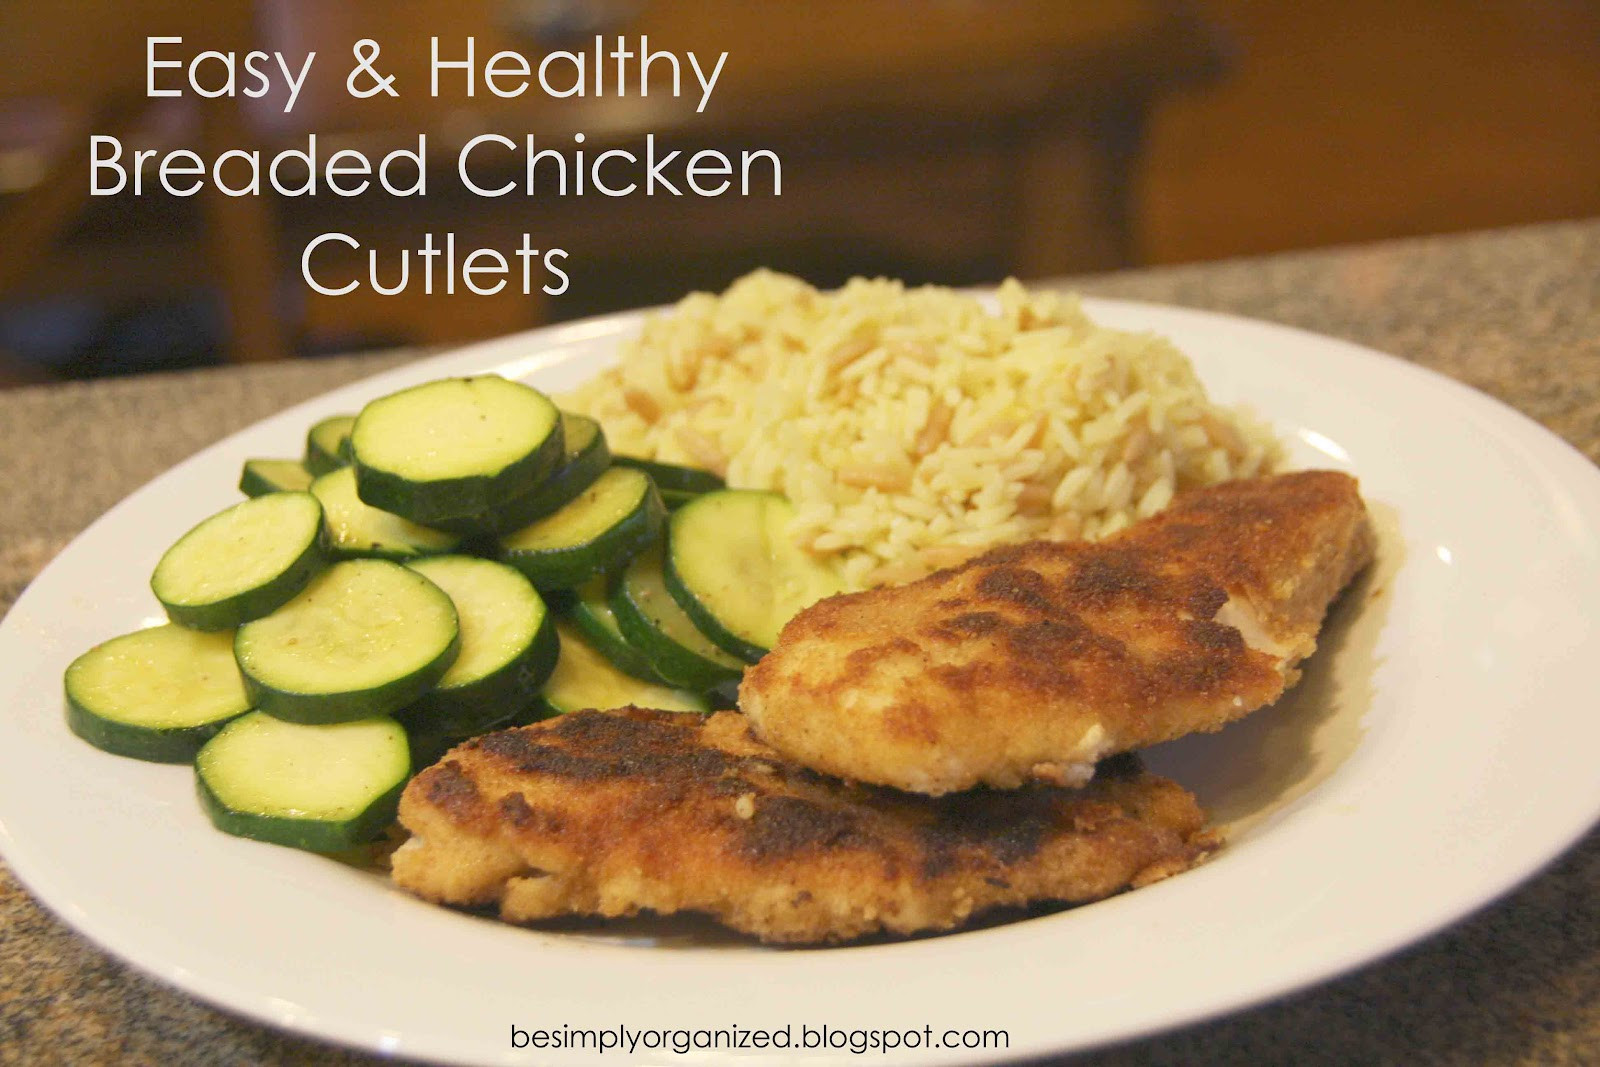 Healthy Veal Cutlet Recipes  recipe easy & healthy breaded chicken cutlets simply